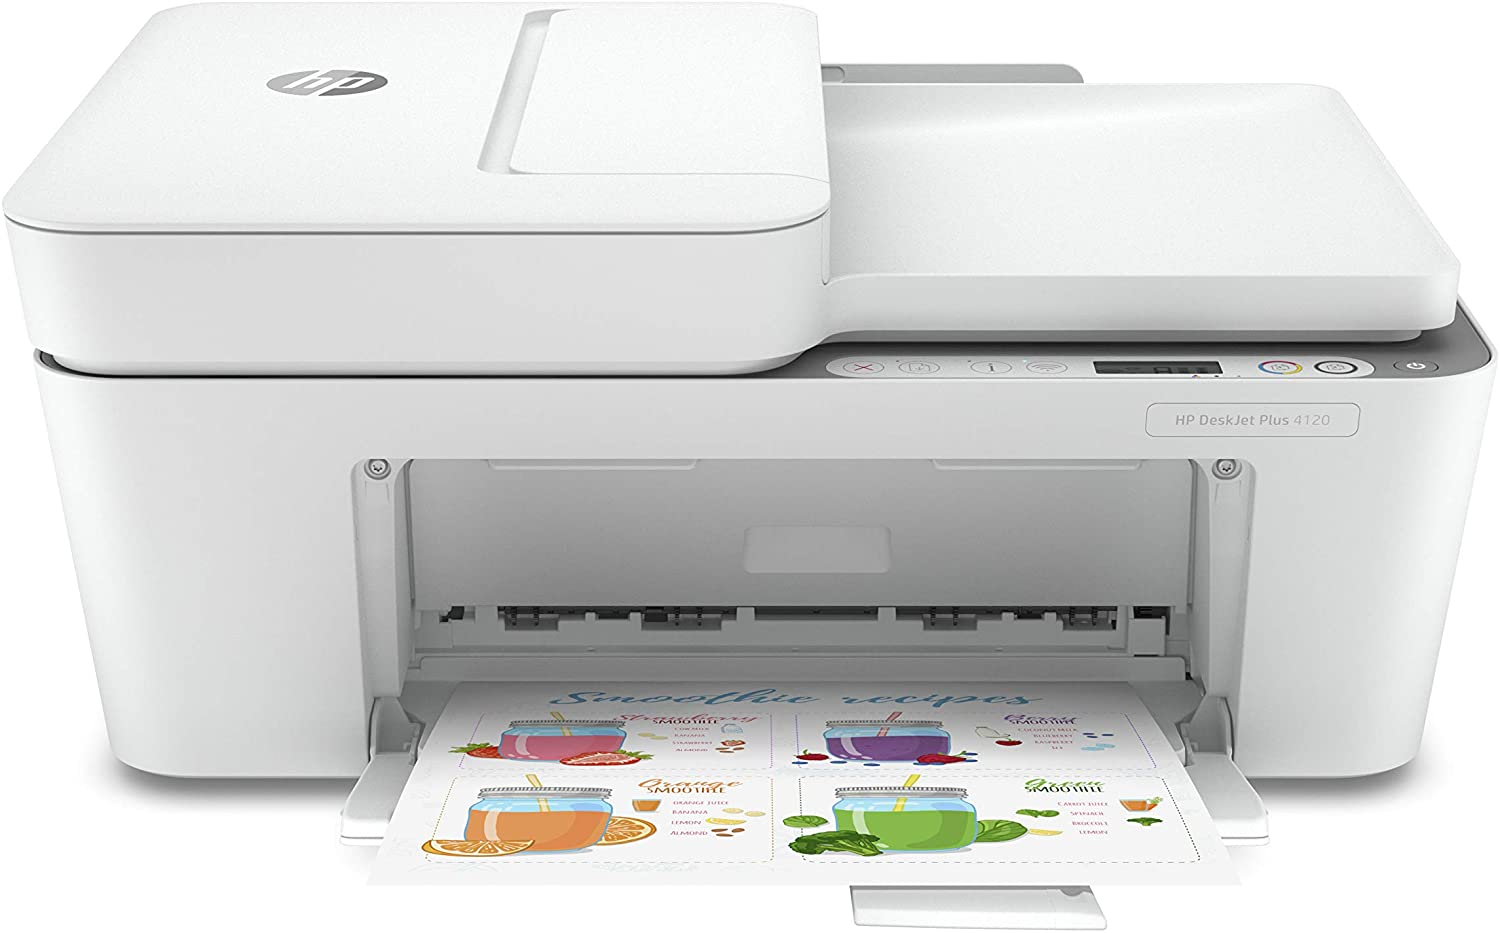 HP DeskJet Plus 4120 All-in-One Printer with Wireless Printing, Instant Ink with 3 Months Trial uk reviews